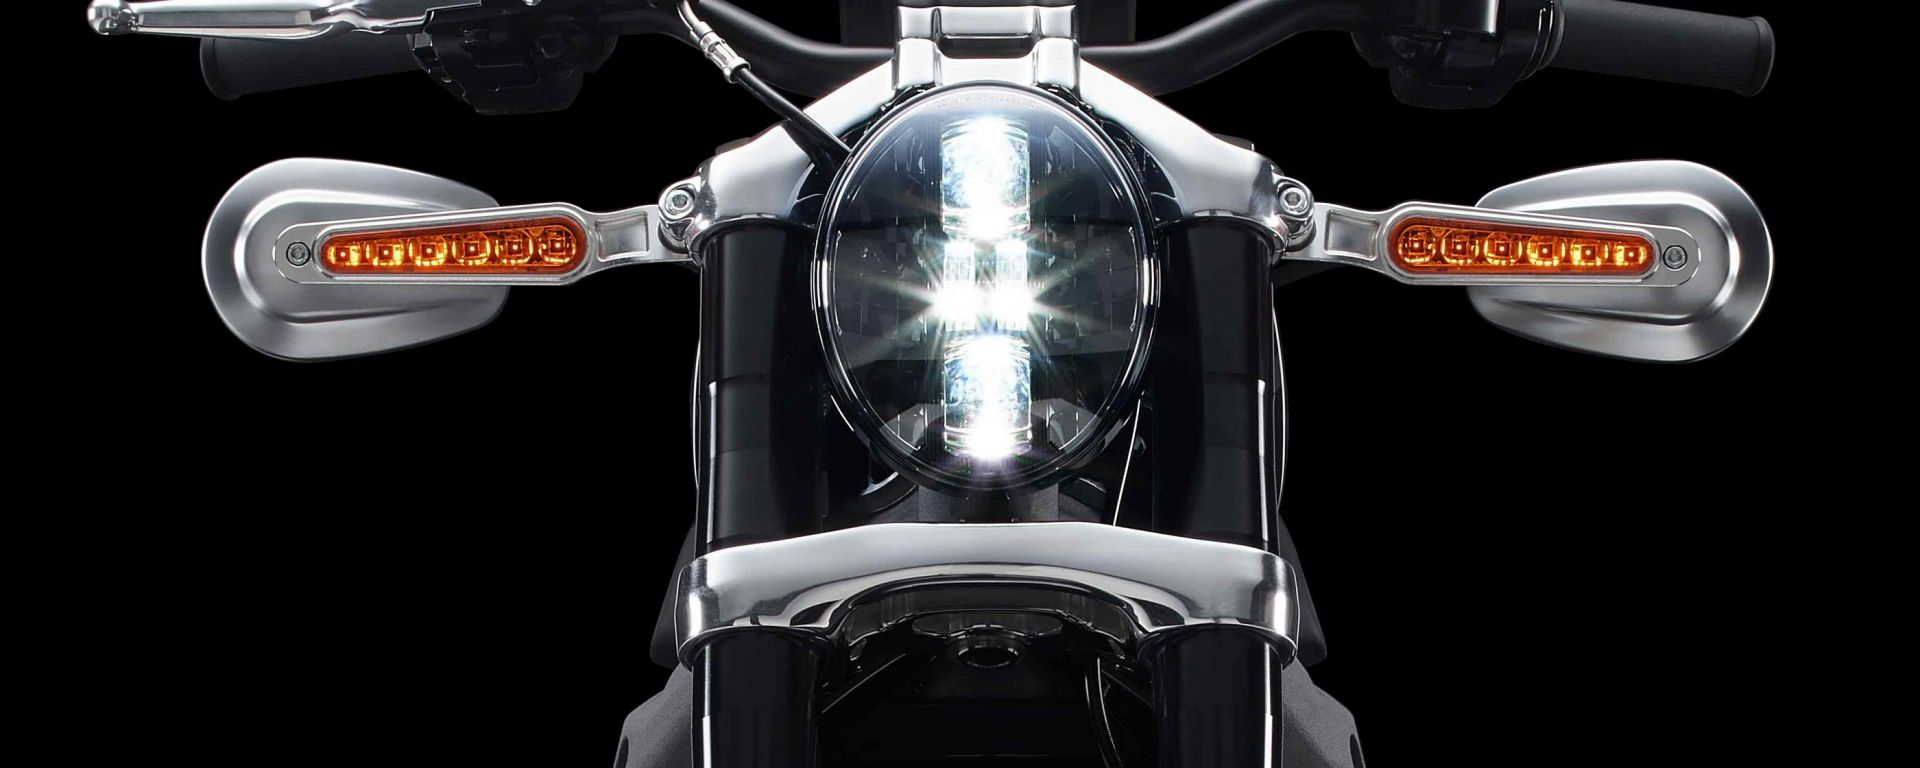 Harley-Davidson Project Livewire, nuove foto